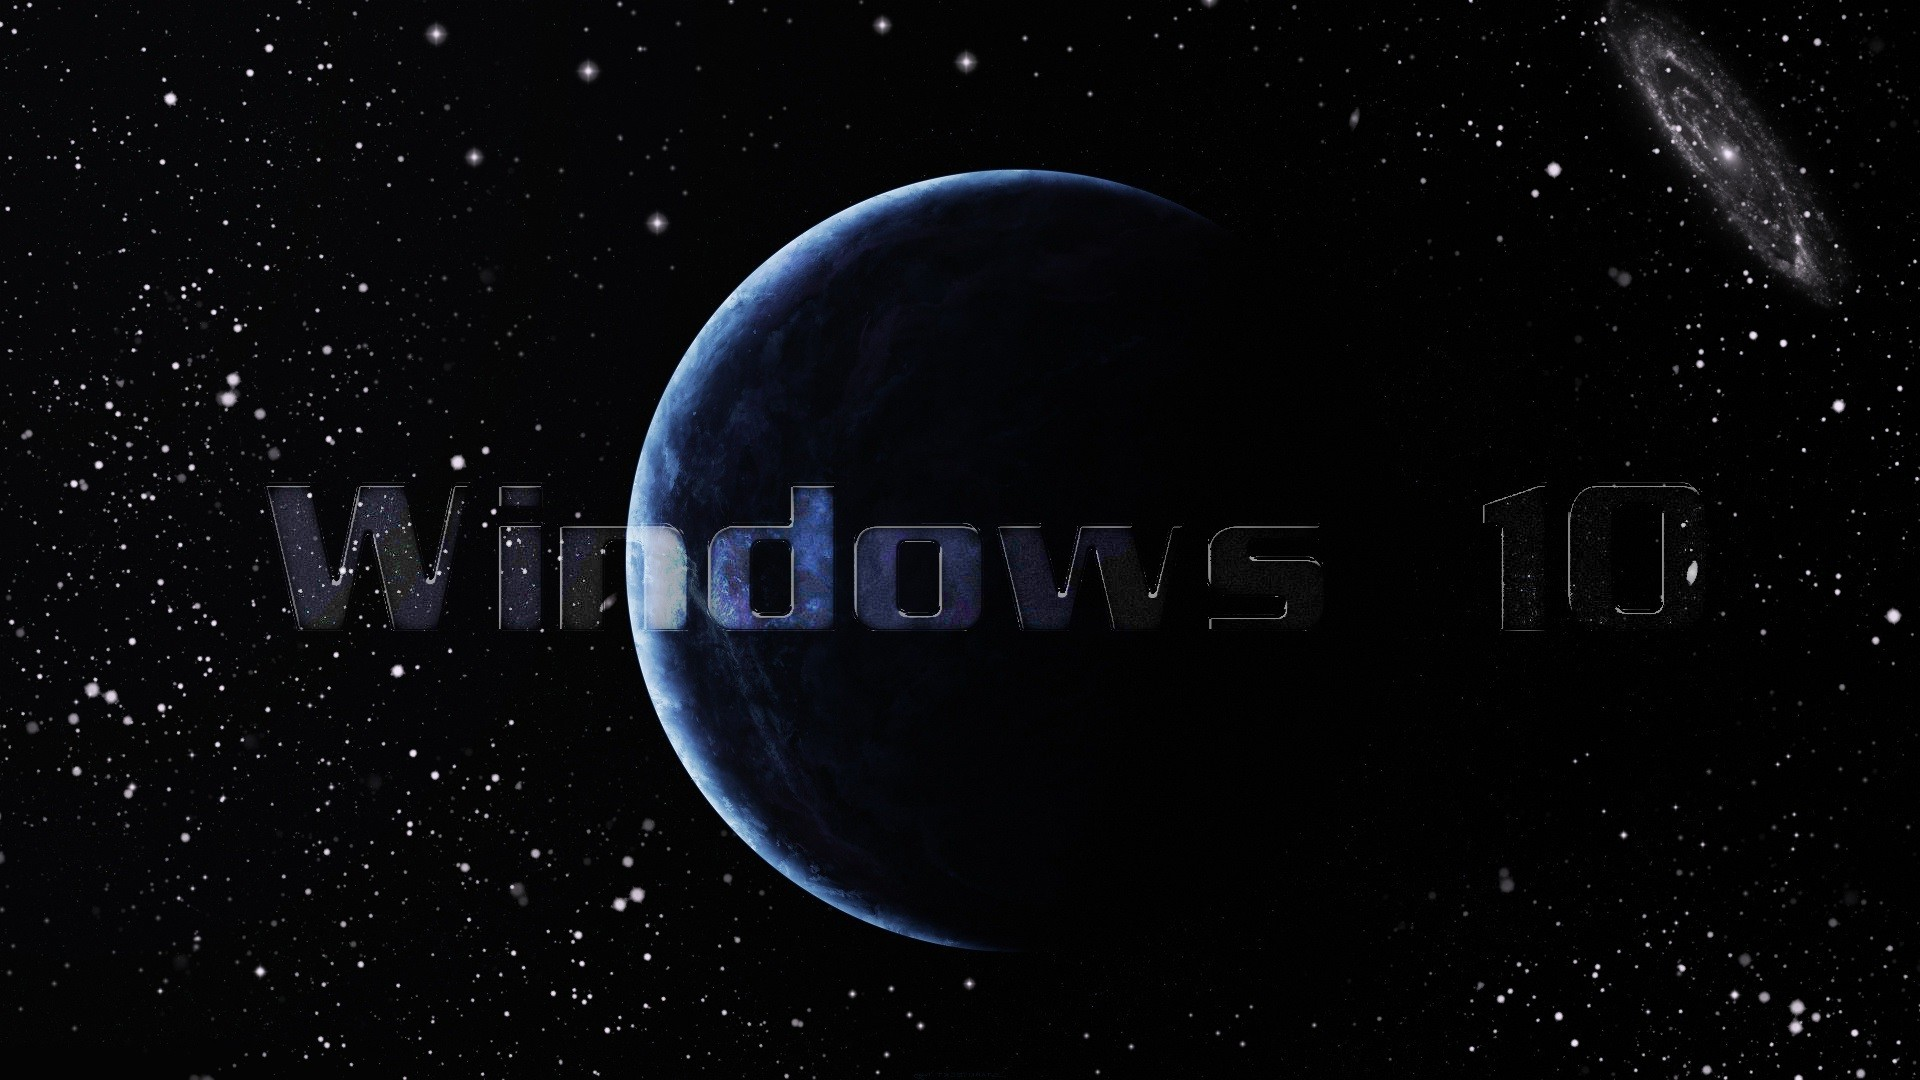 1920x1080 Windows 10 On Galaxy Wallpaper HD #9511 Wallpaper | High Resolution .